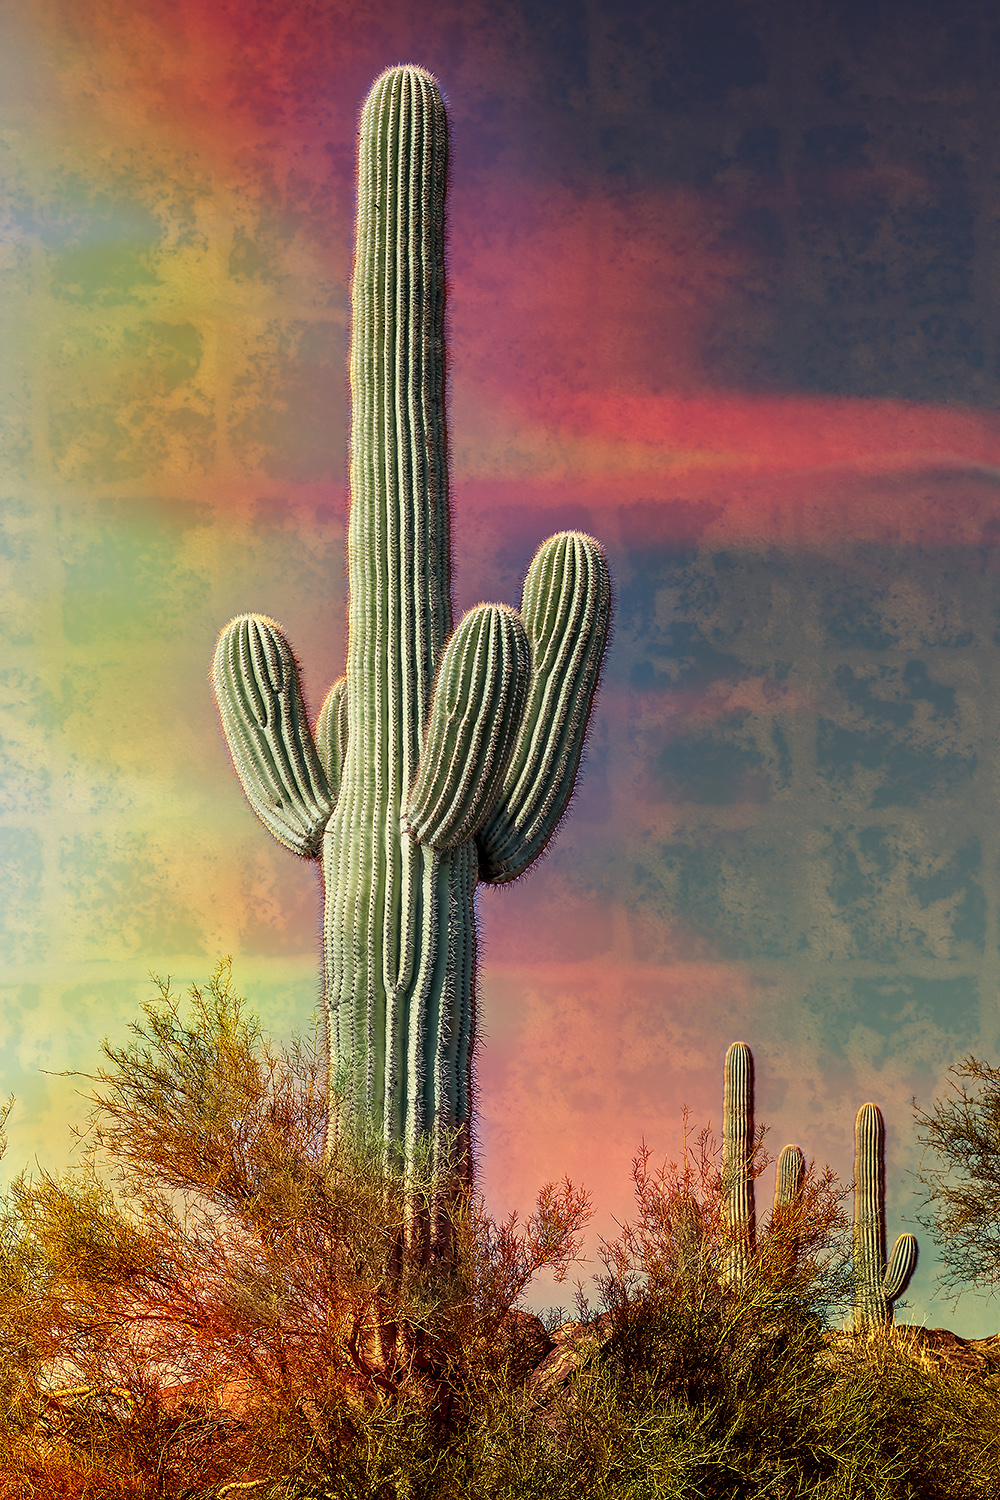 Bold Saguaro Cactus in the desert with colorful and textured background.